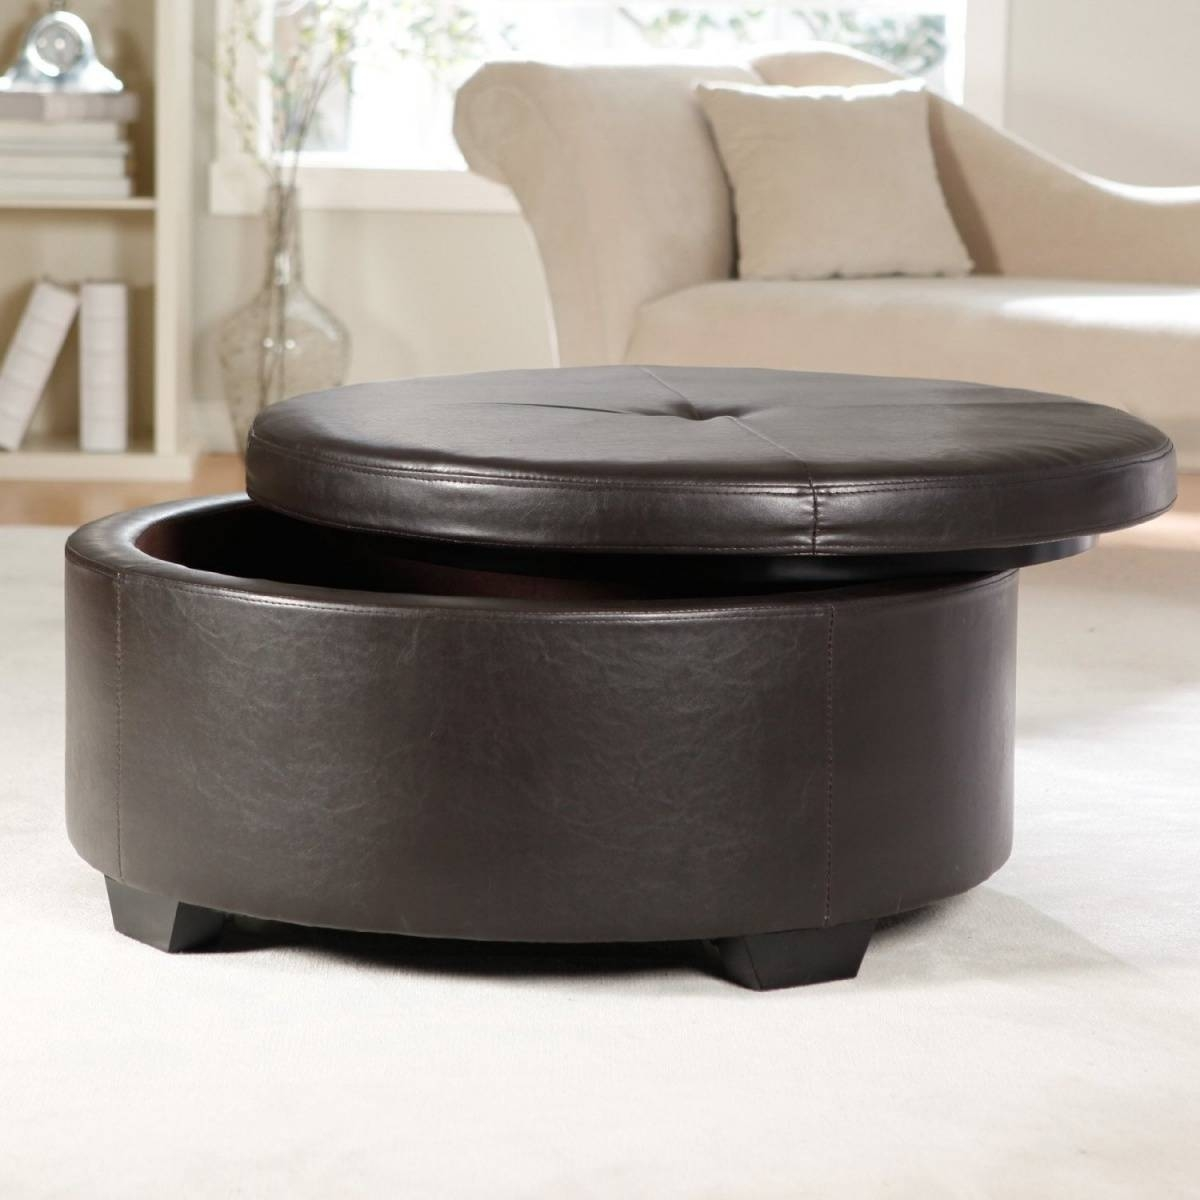 Round Black Storage Ottoman | Stools, Chairs, Seat, And Ottoman within Round Red Coffee Tables (Image 26 of 30)